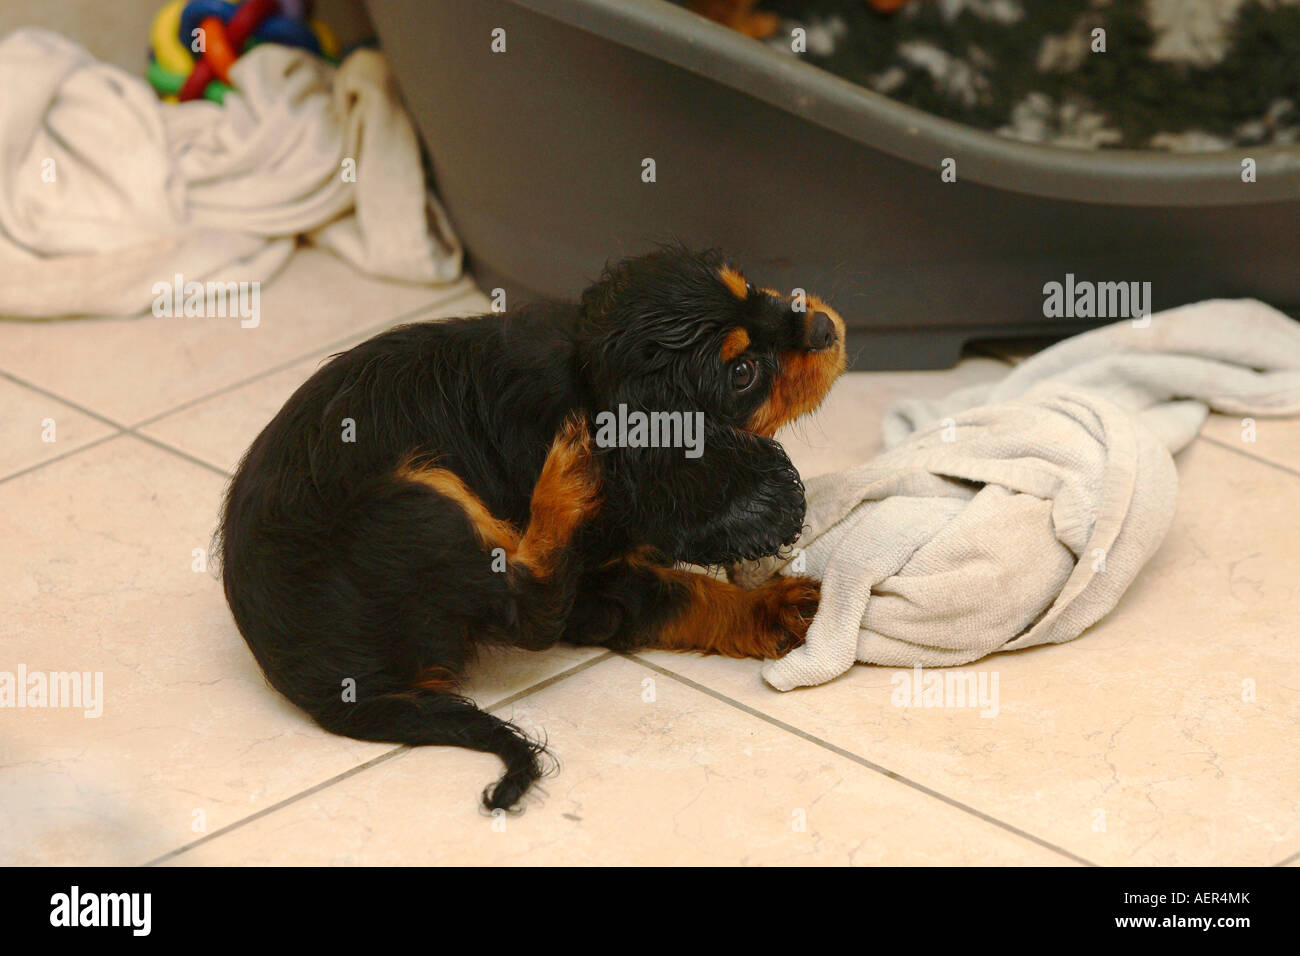 Cavalier King Charles Spaniel Puppy Black And Tan 10 Weeks Stock